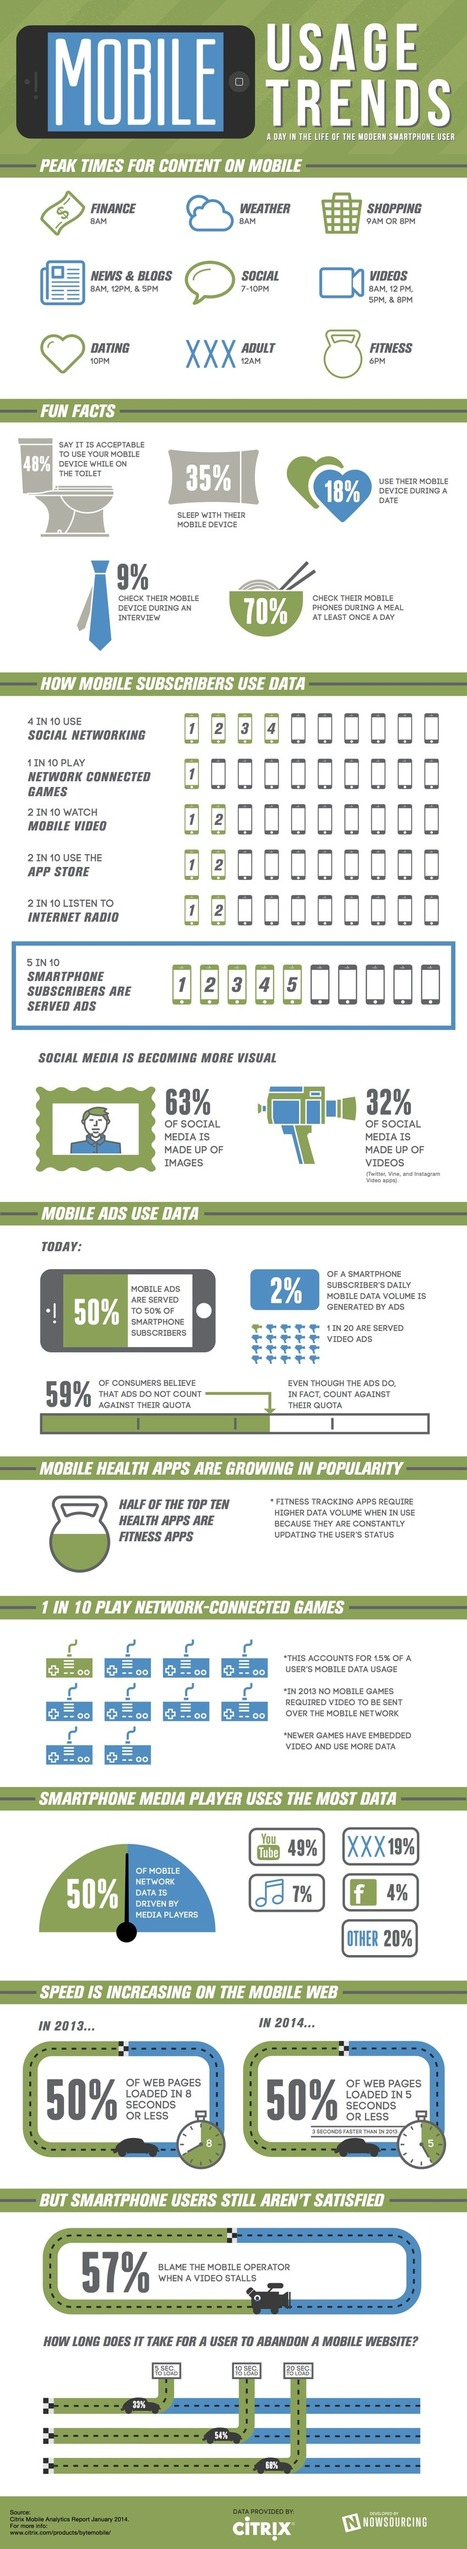 A Day in the Life of the Modern Smartphone User [Infographic] | visualizing social media | Scoop.it